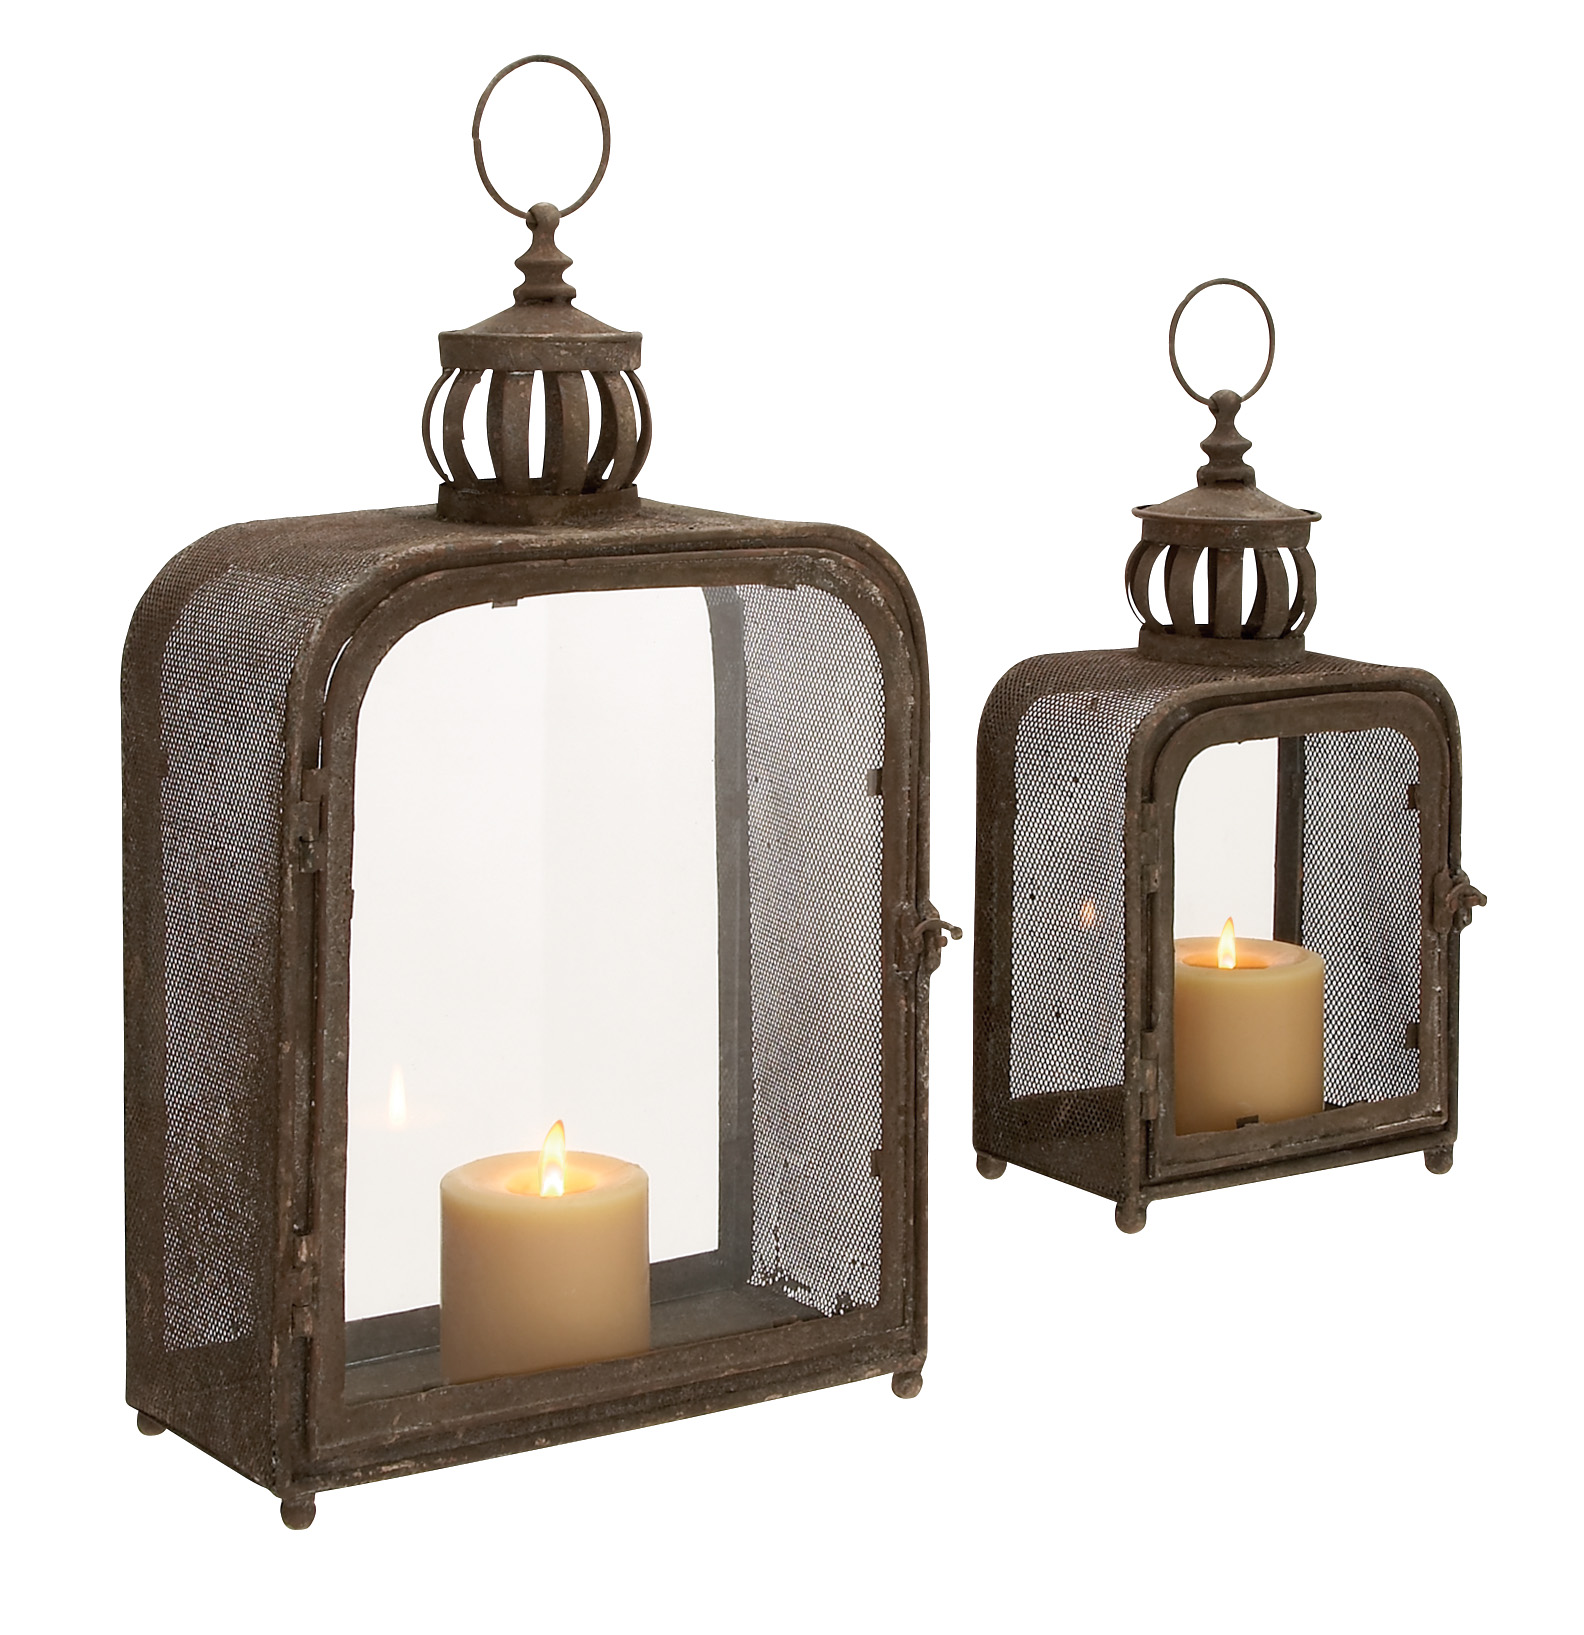 Decmode Metal and Glass Lantern, Set of 2, Multi Color